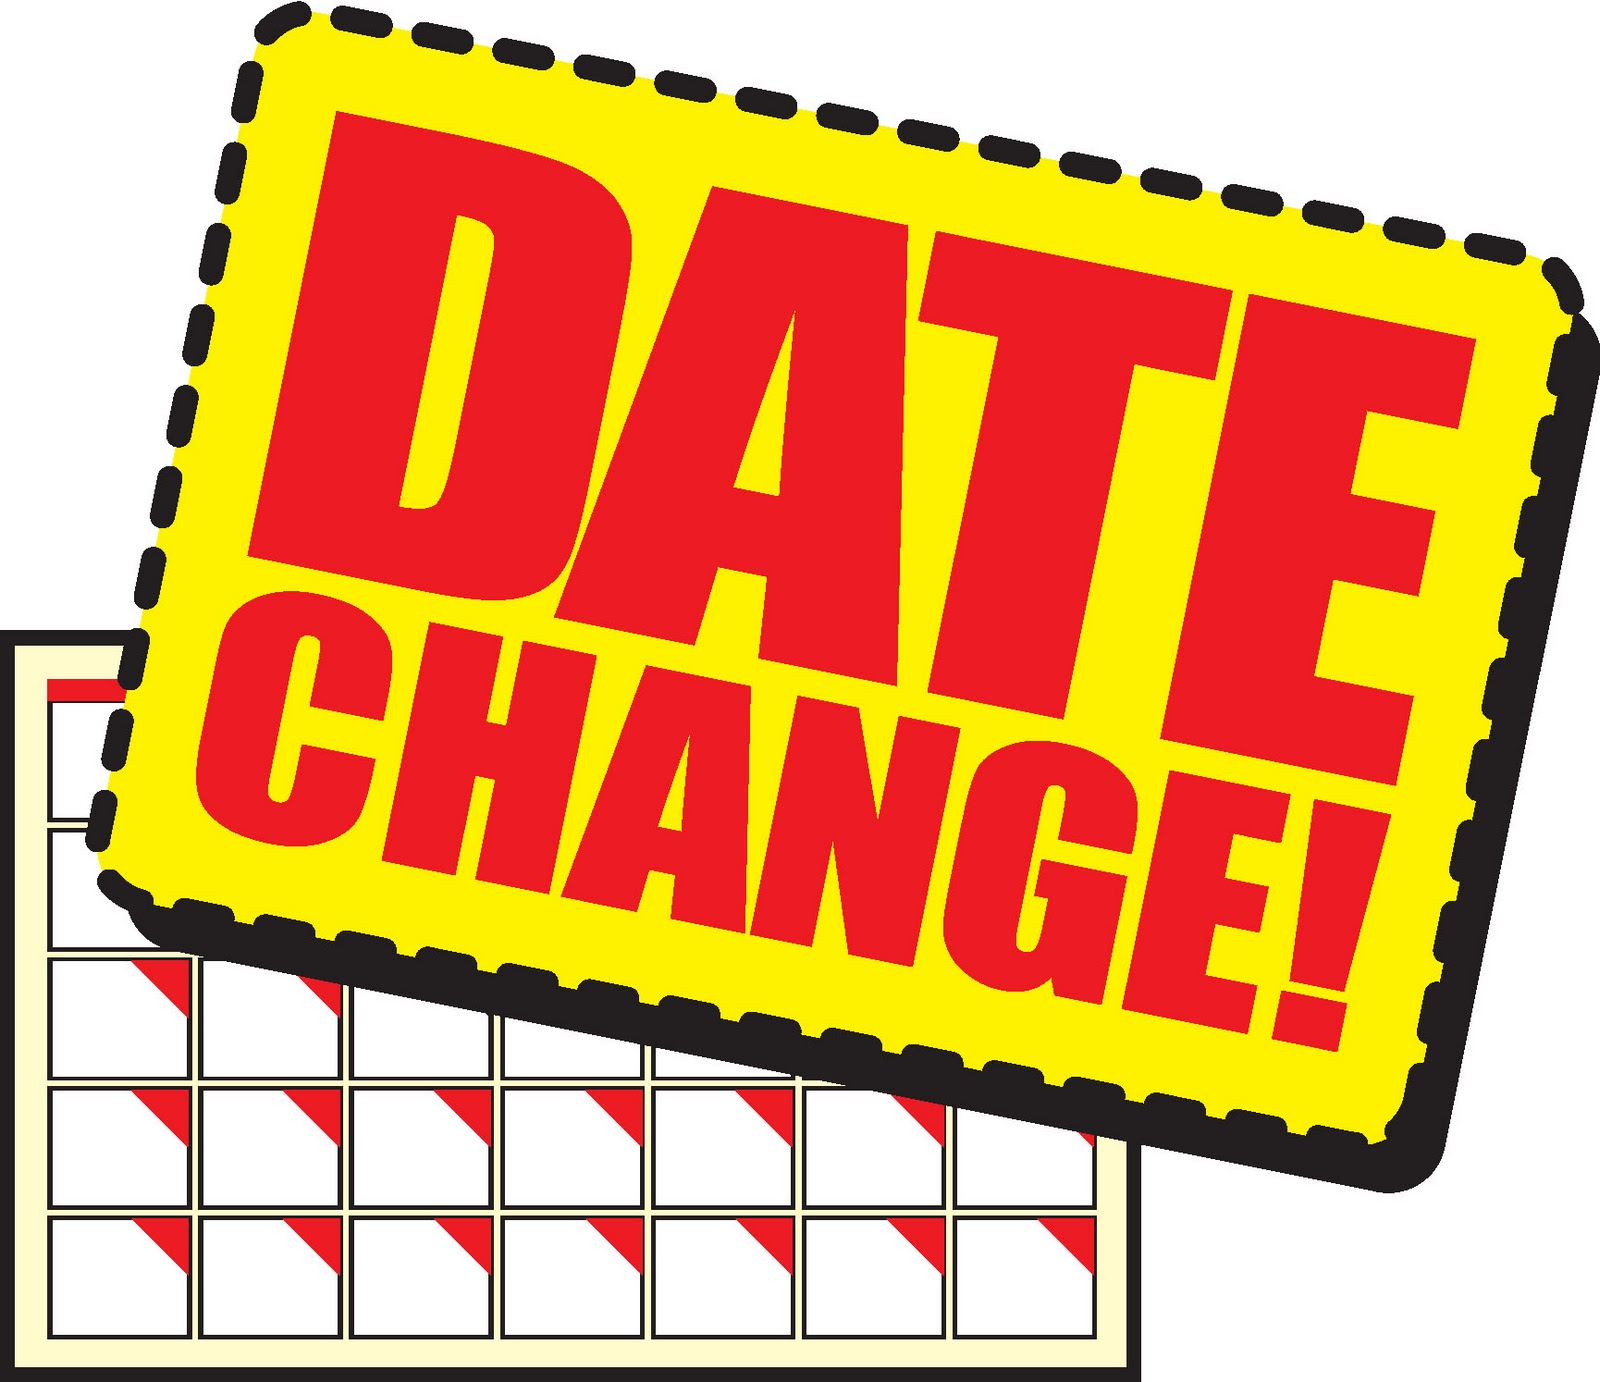 Change of plans clipart picture royalty free library Change Technology Cliparts - Cliparts Zone picture royalty free library